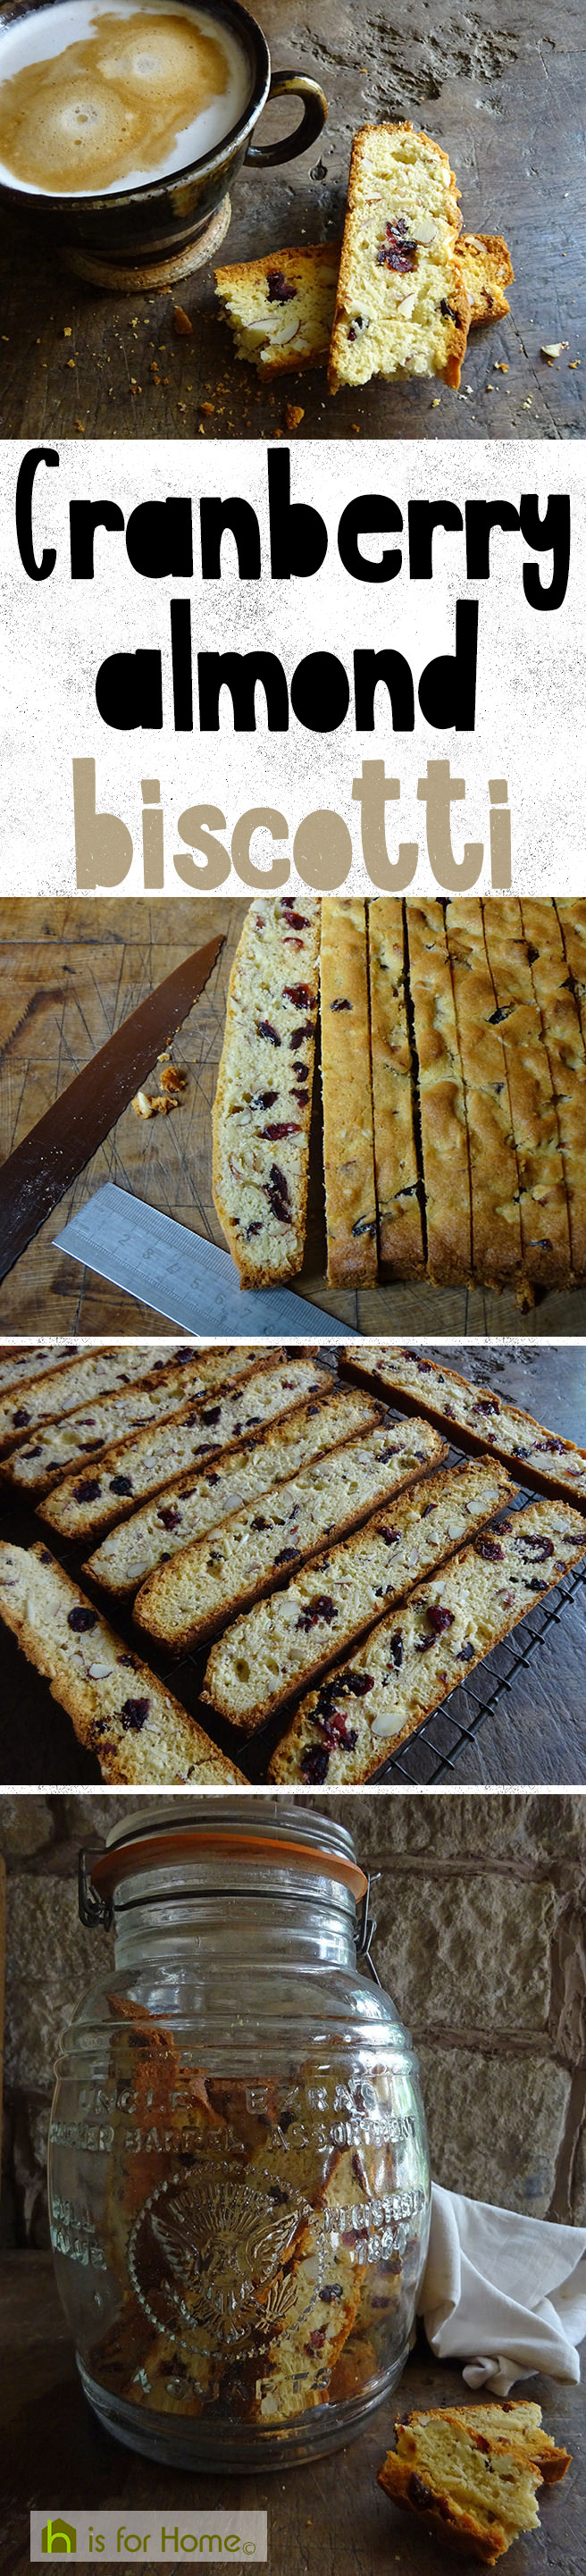 Home-made cranberry almond biscotti | H is for Home #recipe #biscotti #baking #biscuits #ccokery #cooking